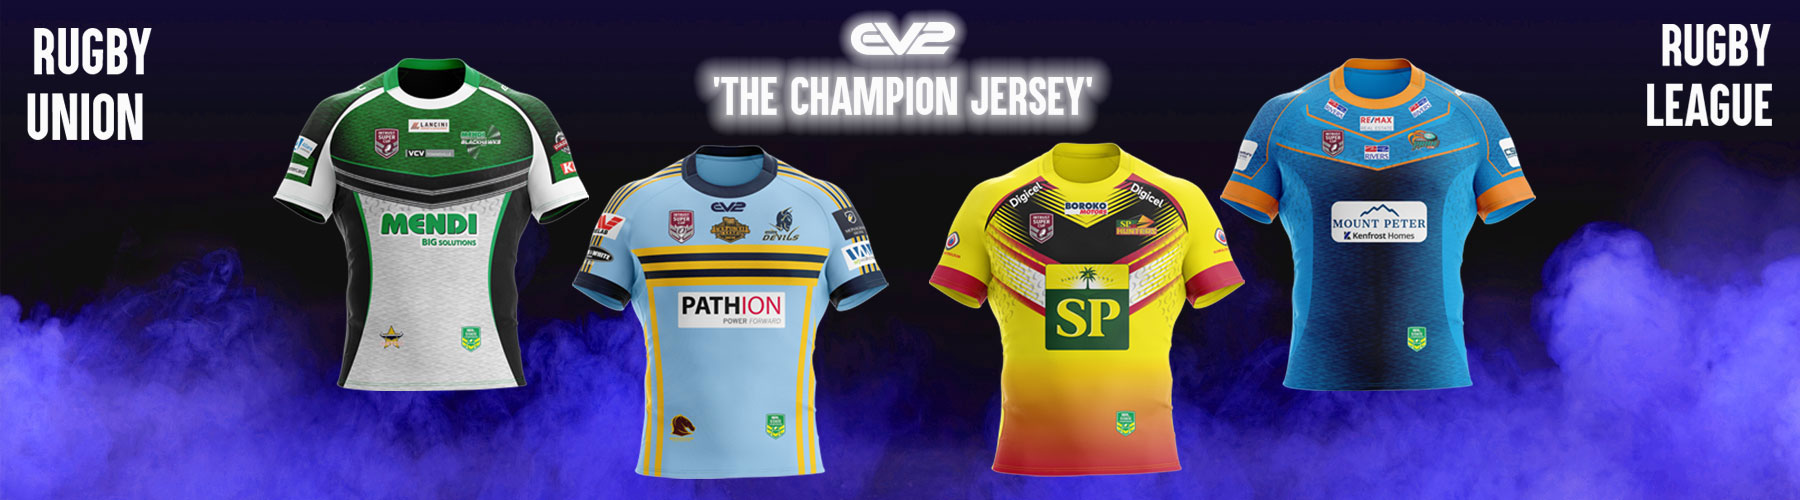 73efb4e55c8 ... Online Bespoke Rugby League and Union Kit Builder/Designer ...